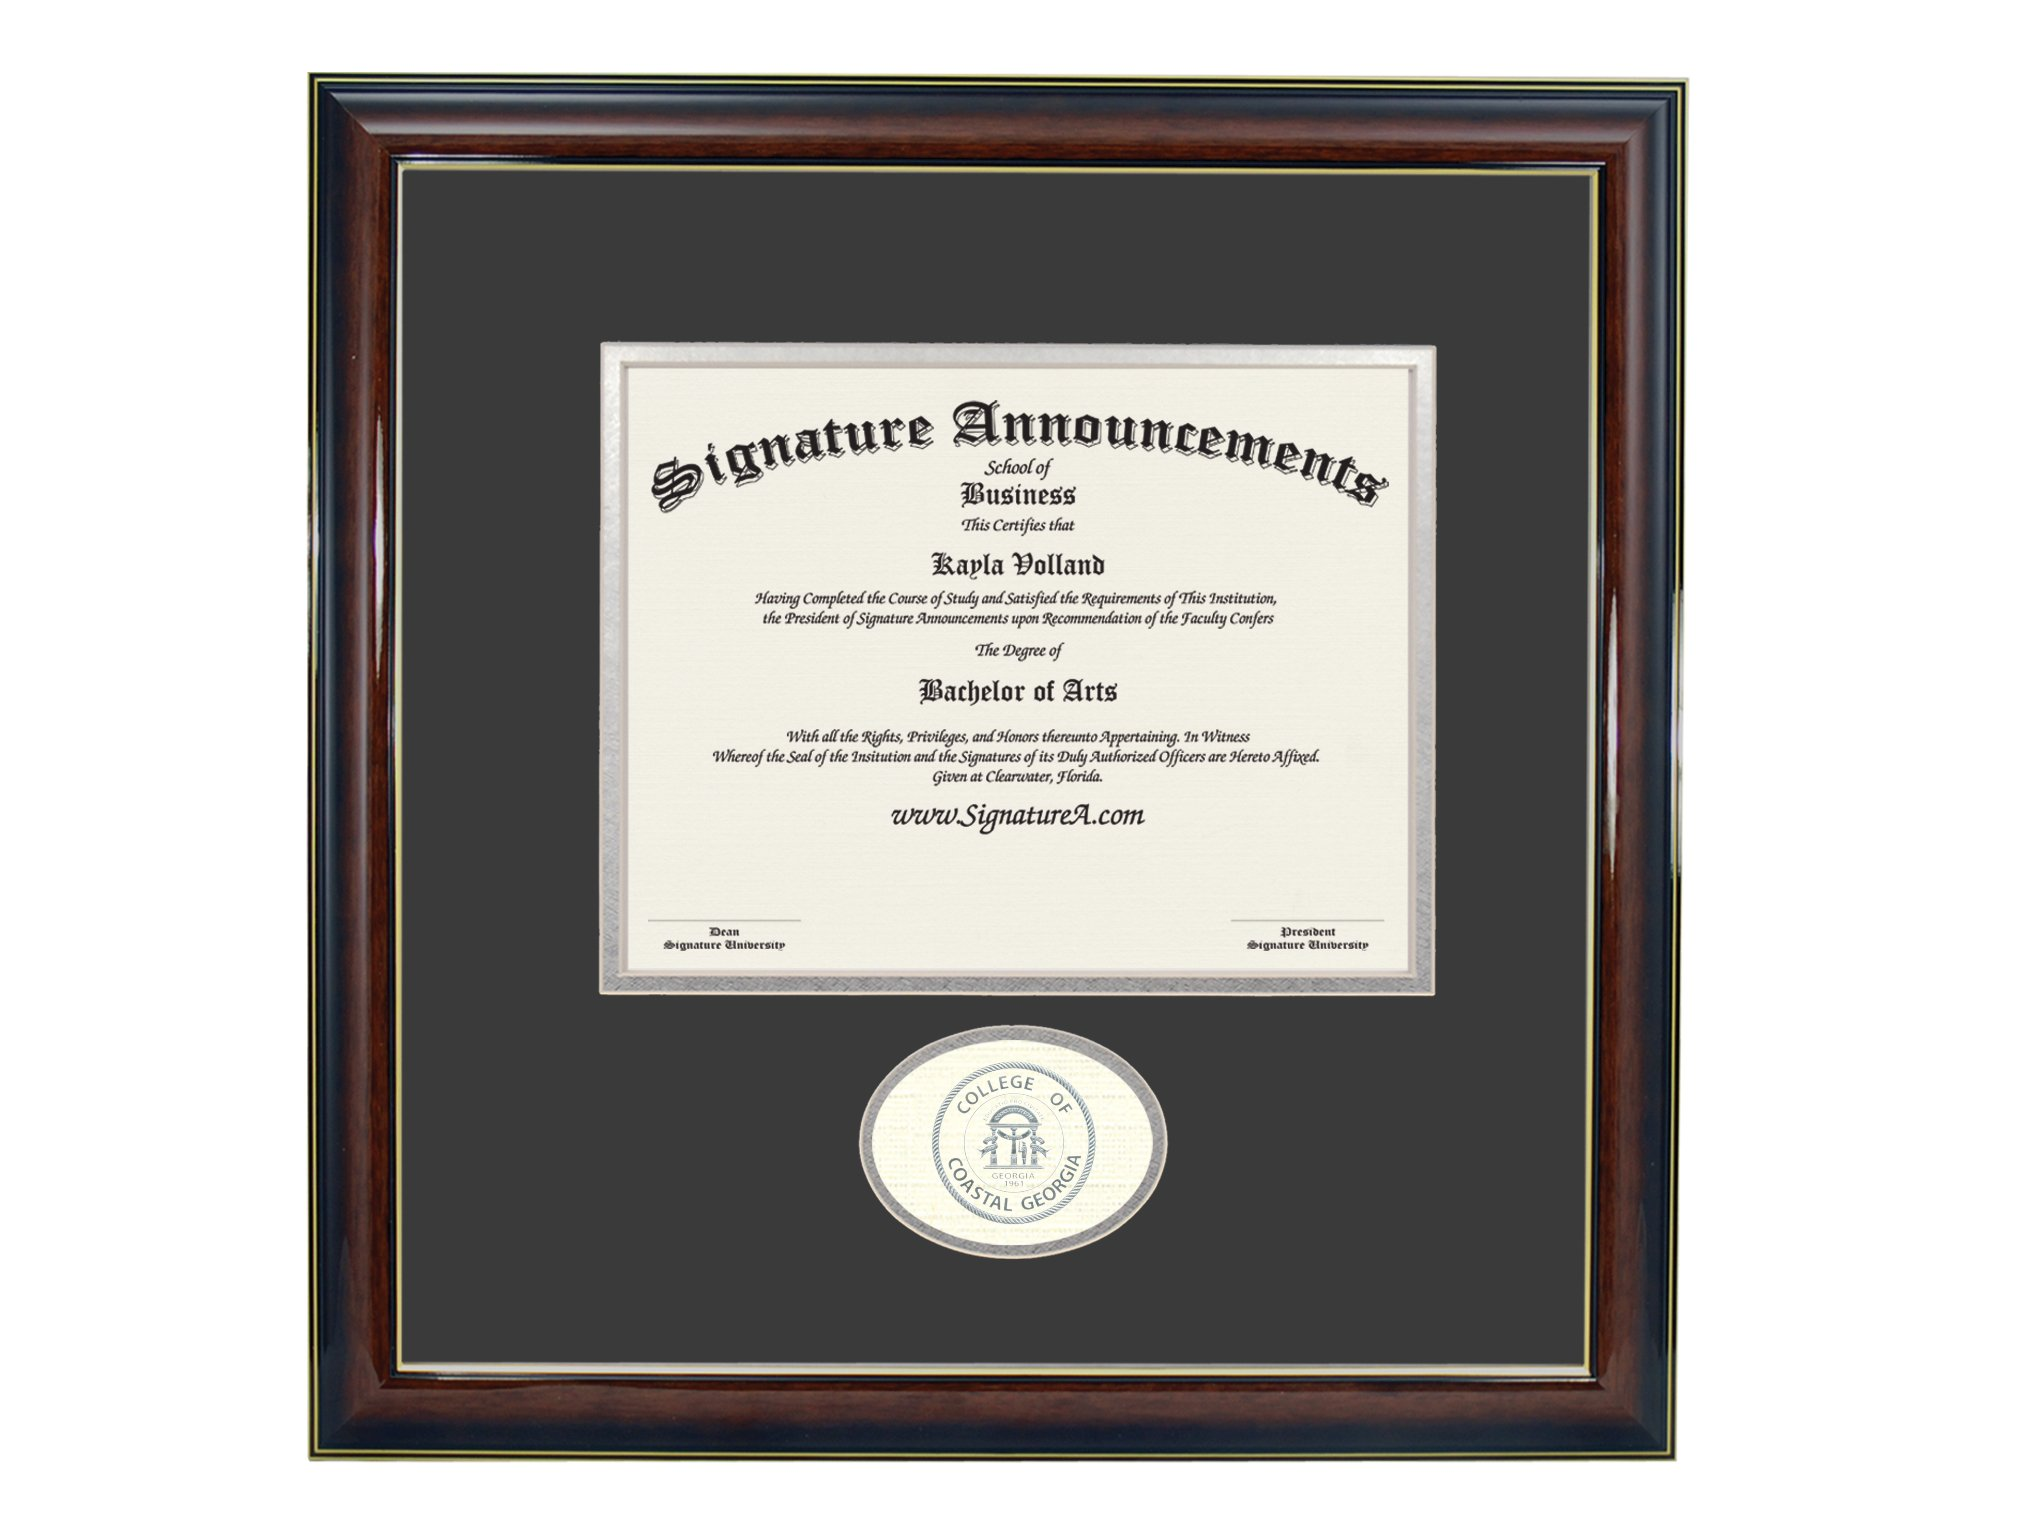 Signature Announcements College-of-Coastal-Georgia Undergraduate, Graduate/Professional/Doctor Sculpted Foil Seal Diploma Frame, 16'' x 16'', Gold Accent Gloss Mahogany